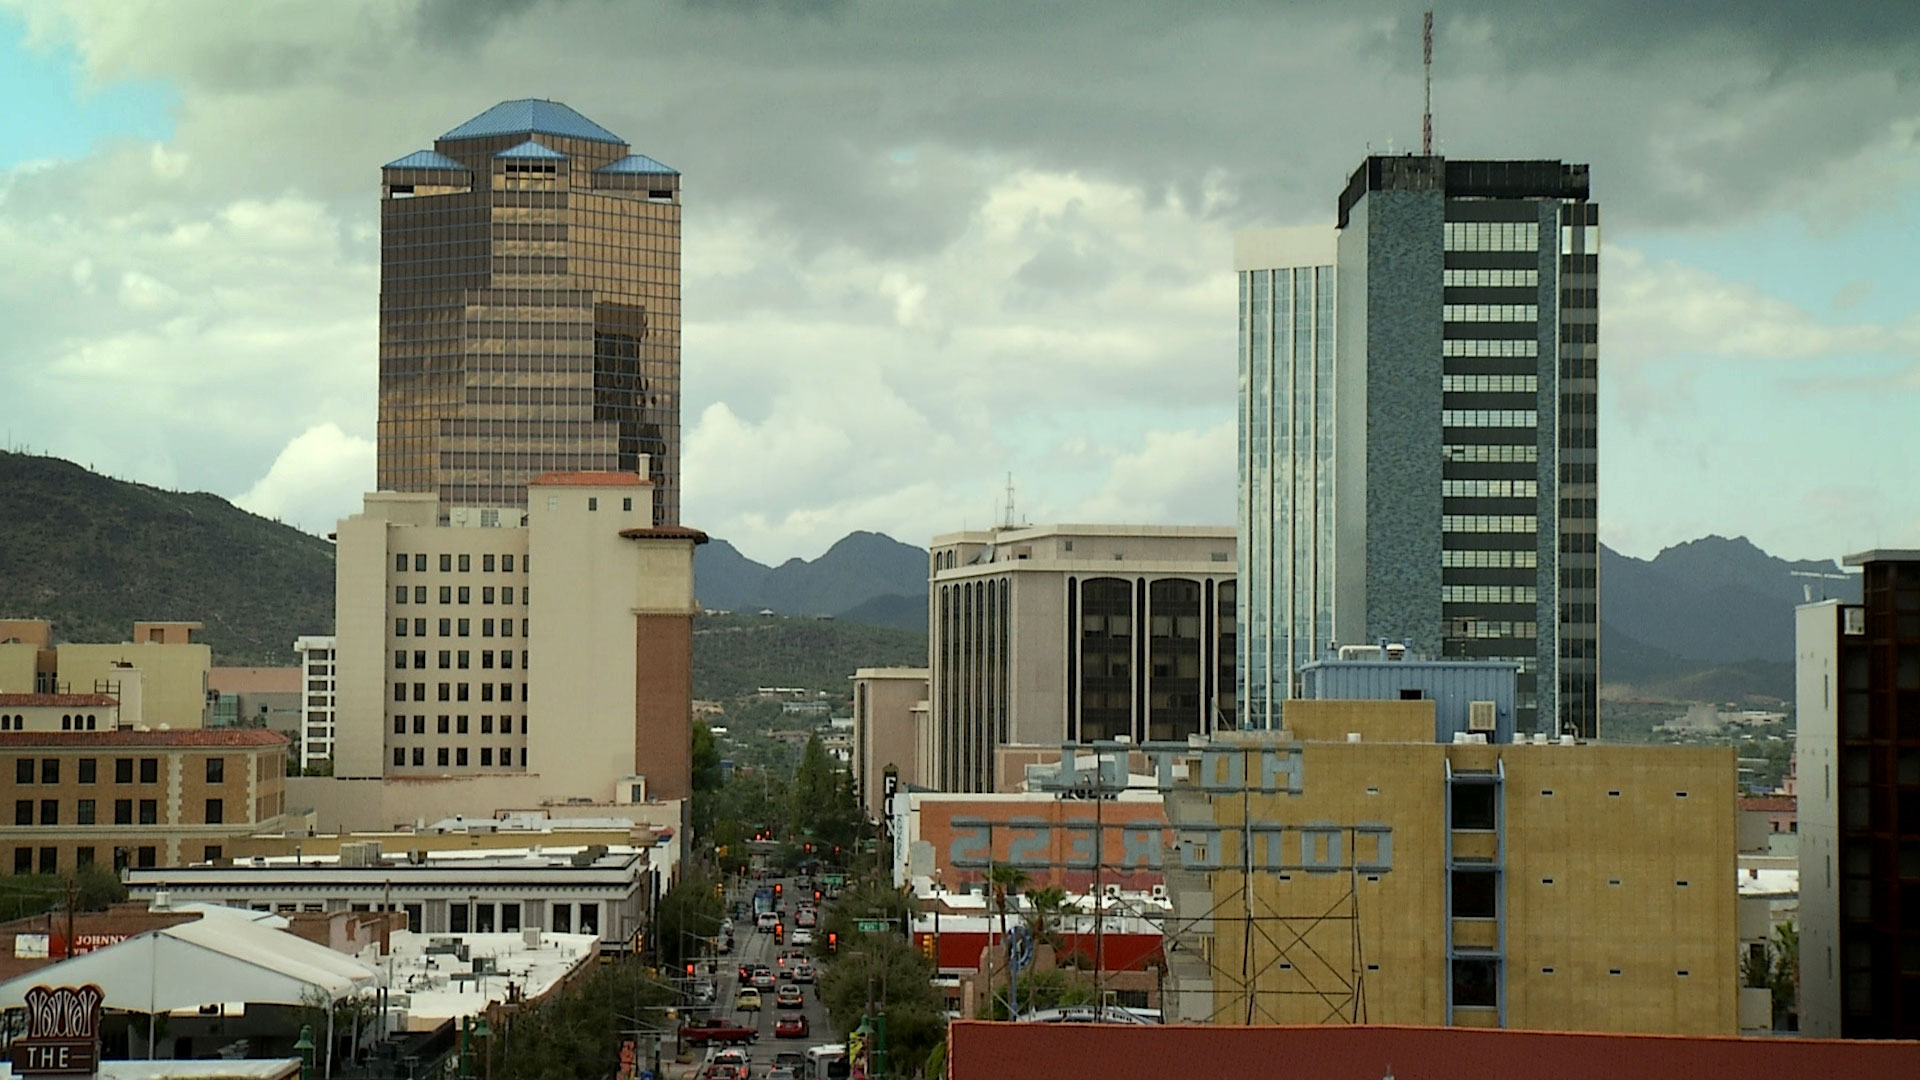 A view of Congress Street in downtown Tucson.